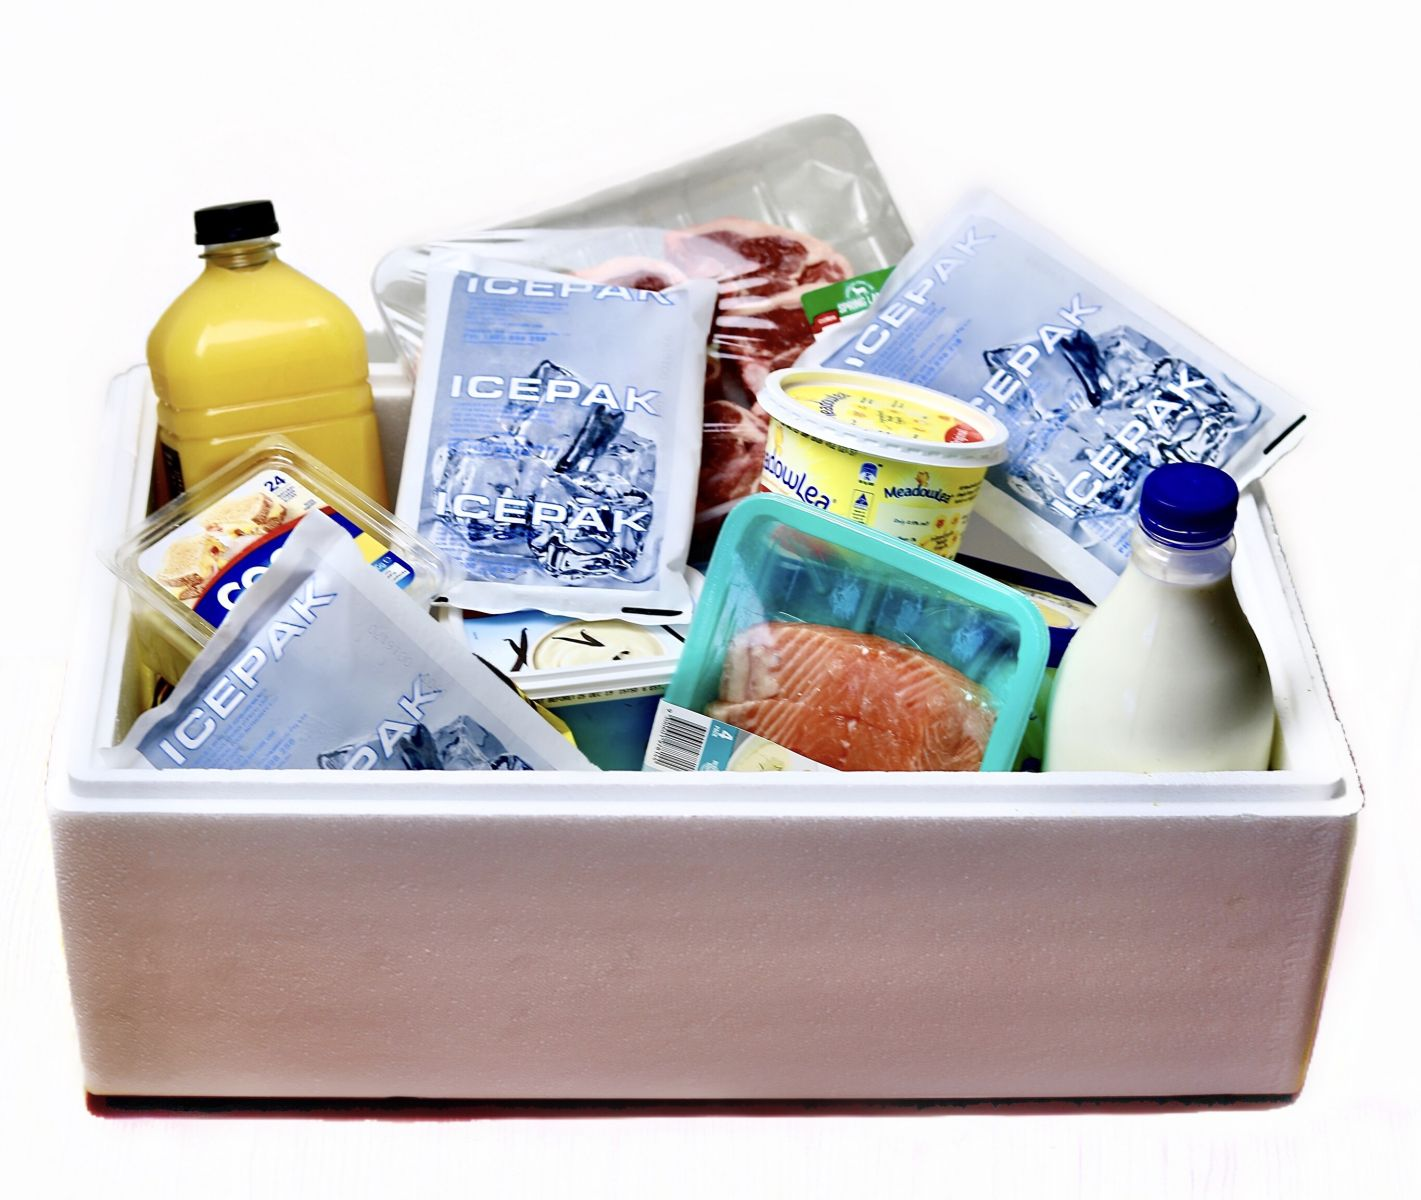 Pre Frozen gel ice packs for packaging and cold shipping of foods